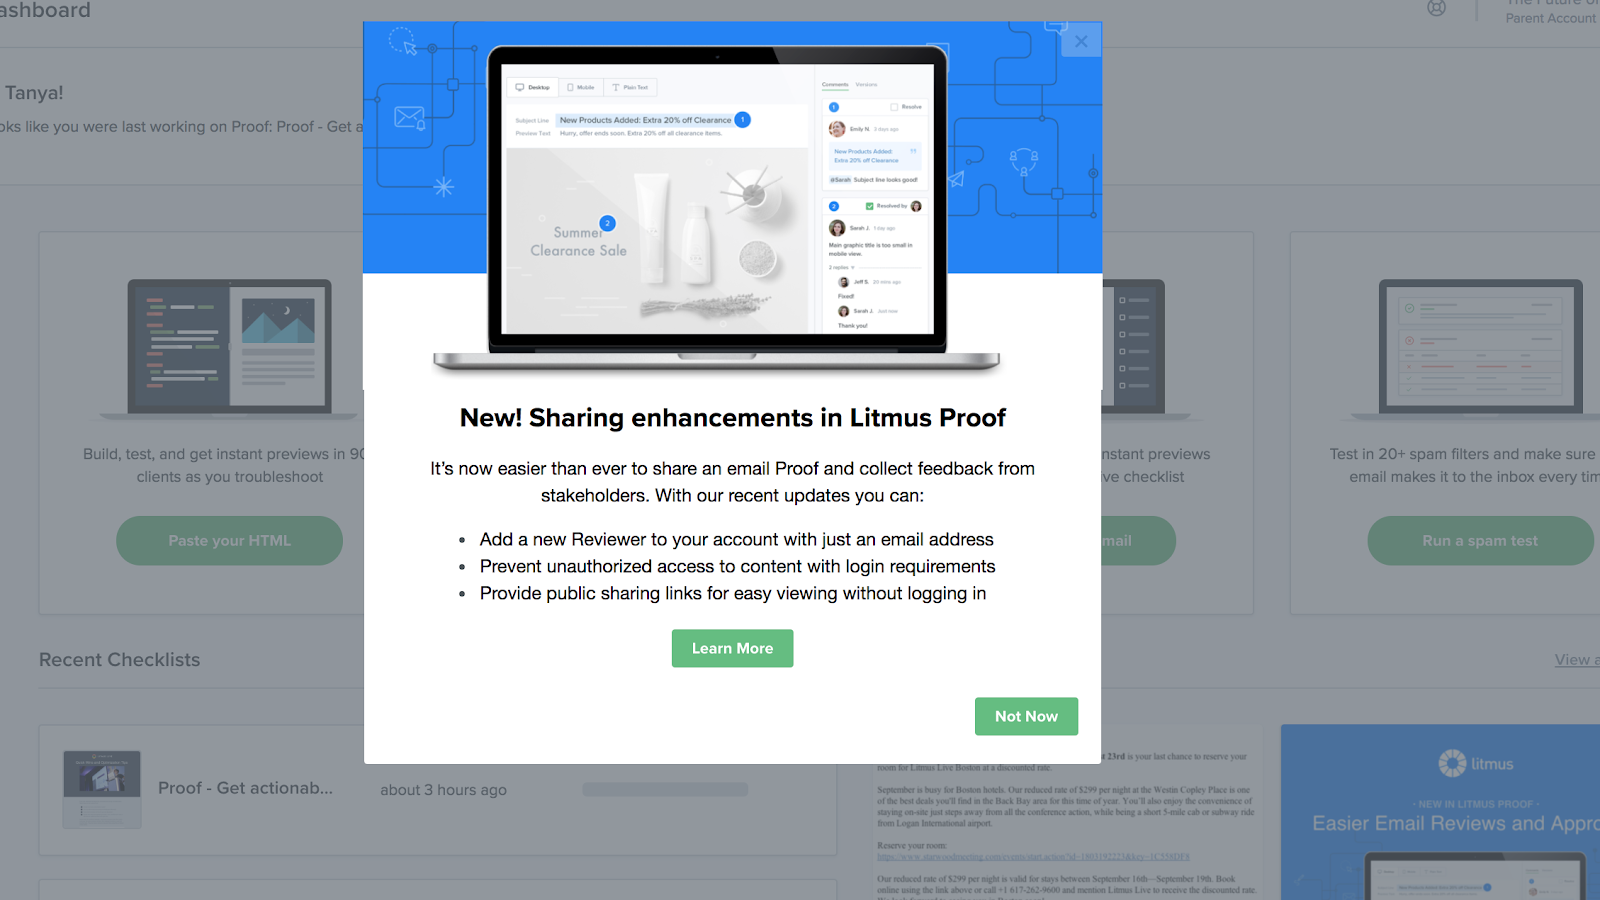 """This screenshot shows a new feature announcement example from Litmus. It shows a modal that says """"new! sharing enhancements in Litmus Proof"""" and gives more information about the new feature. This is a feature announcement example built using Appcues."""